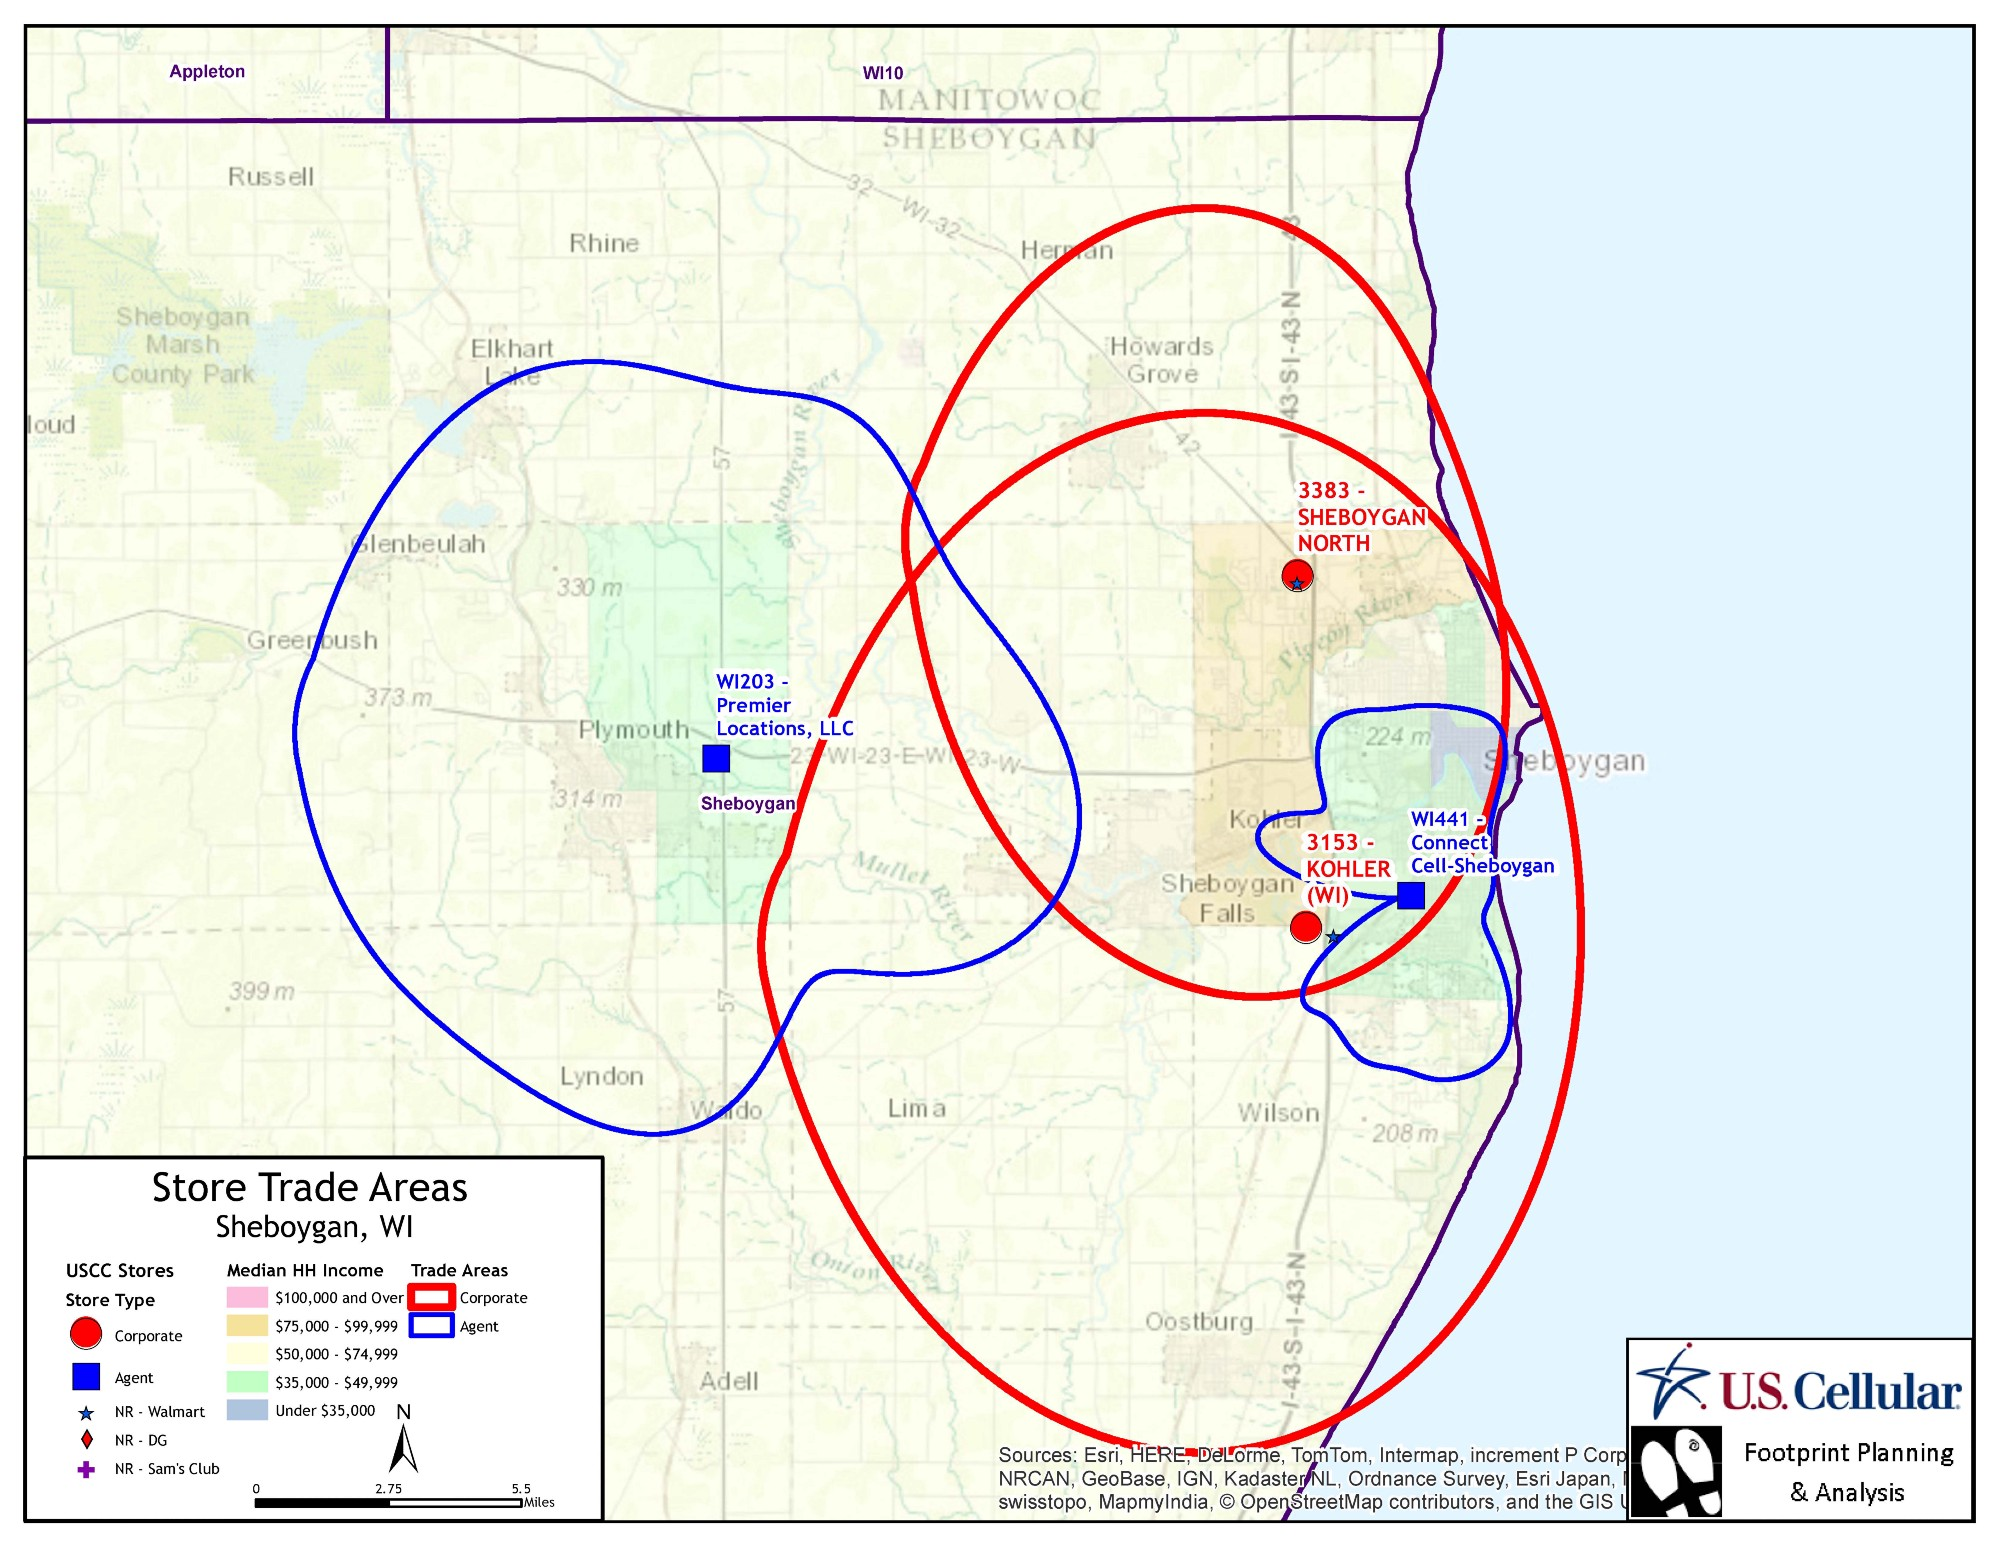 Customer Derived Trade Area Maps Developed With Esri Business Analyst Desktop Help U S Cellular Optimize Store Coverage In Its Markets Example